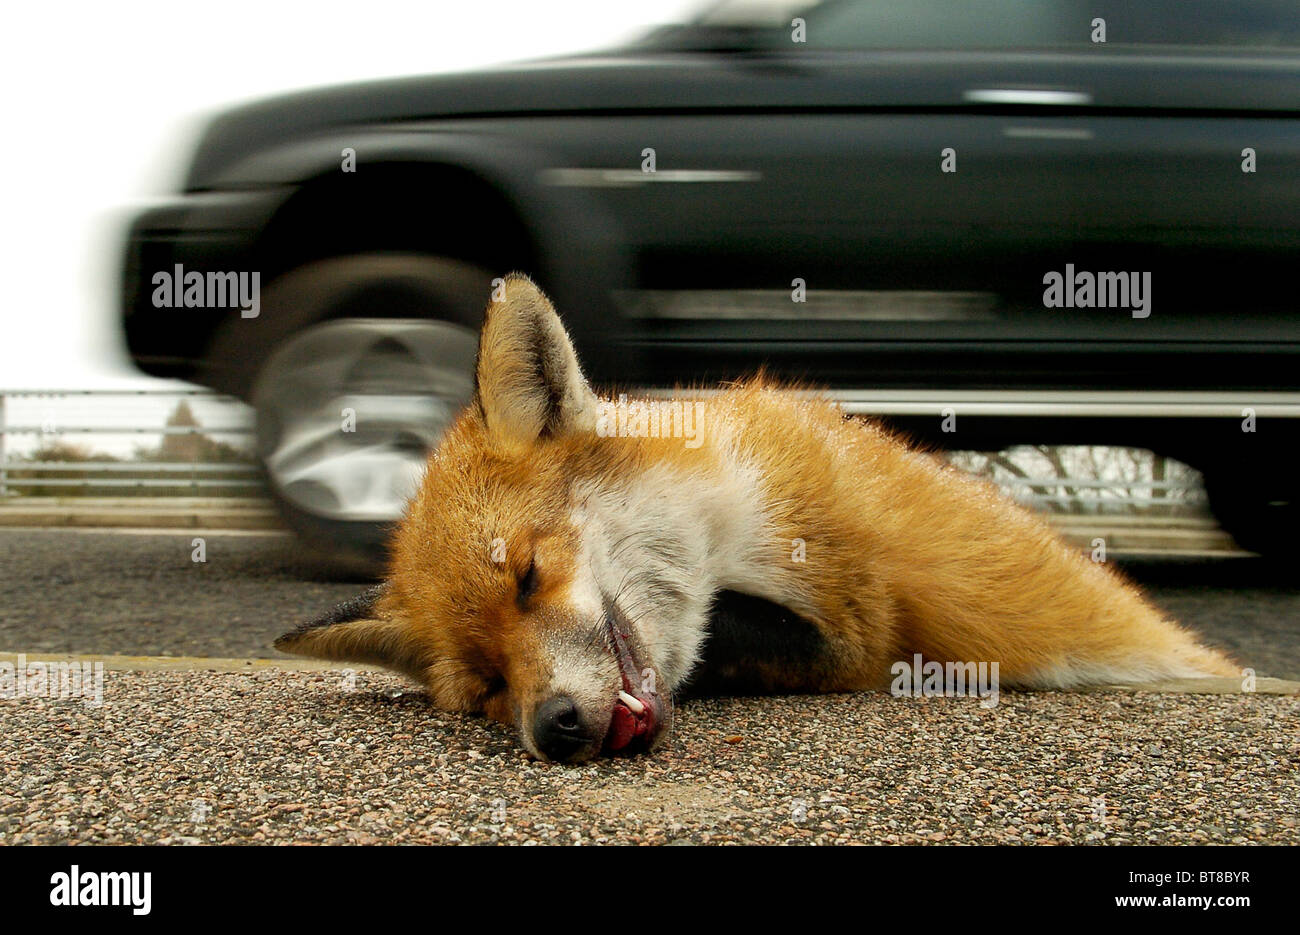 A Dead Fox Lies In The Gutter After Being Hit By A Car On